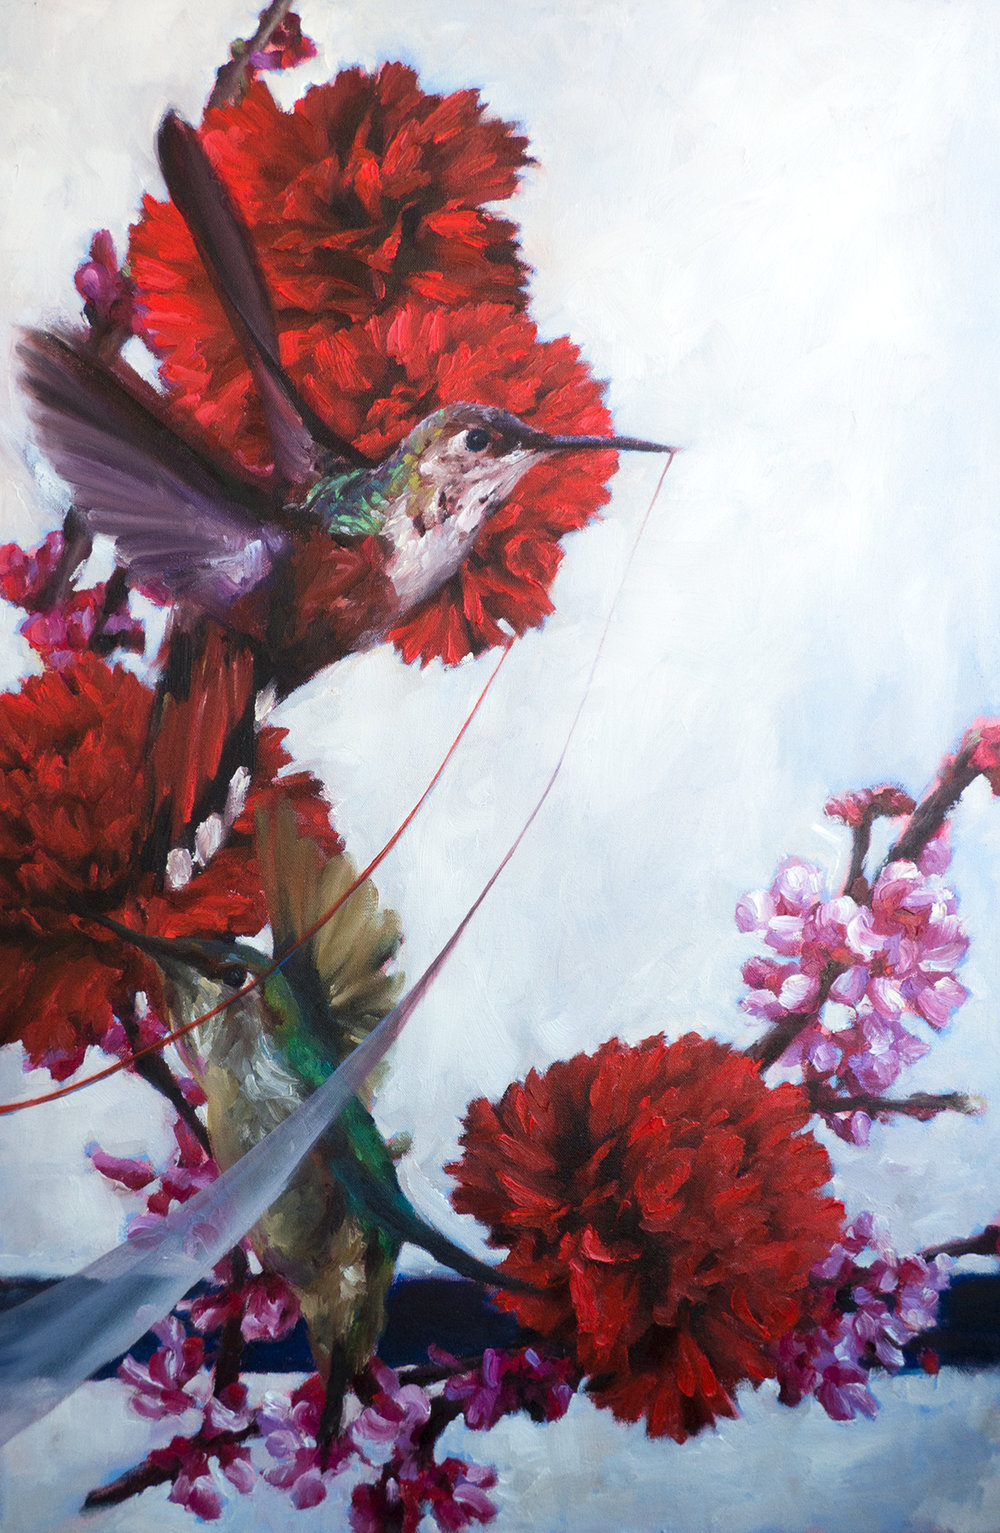 You Said No Winter Lasts Forever (Hummingbirds)